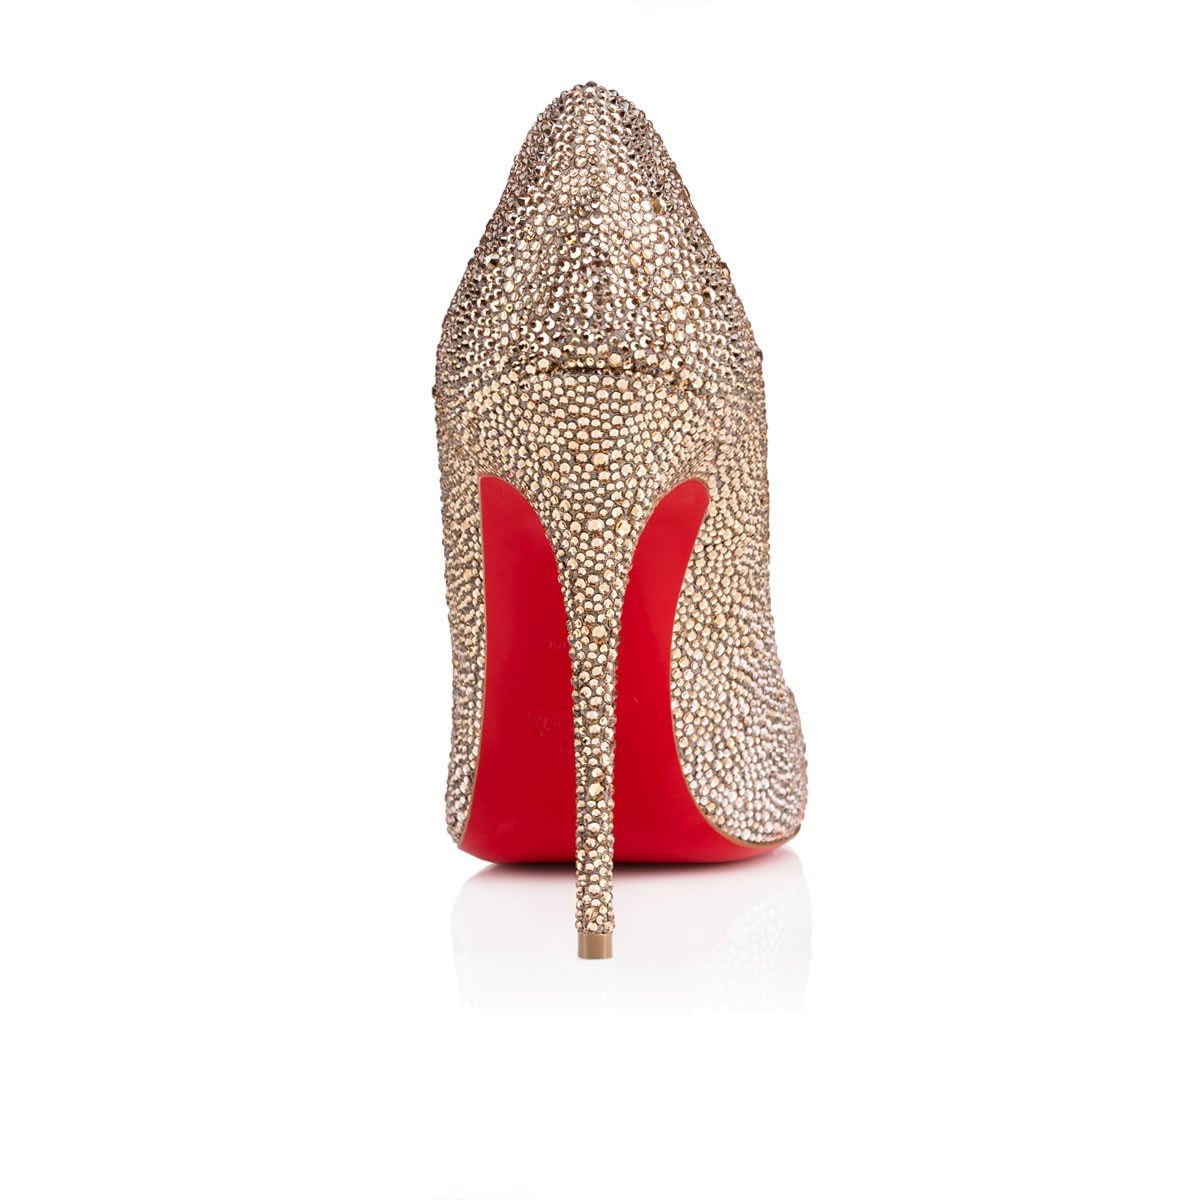 07bccf14759 Lyst - Christian Louboutin So Kate Ombré Crystal Pumps in Red